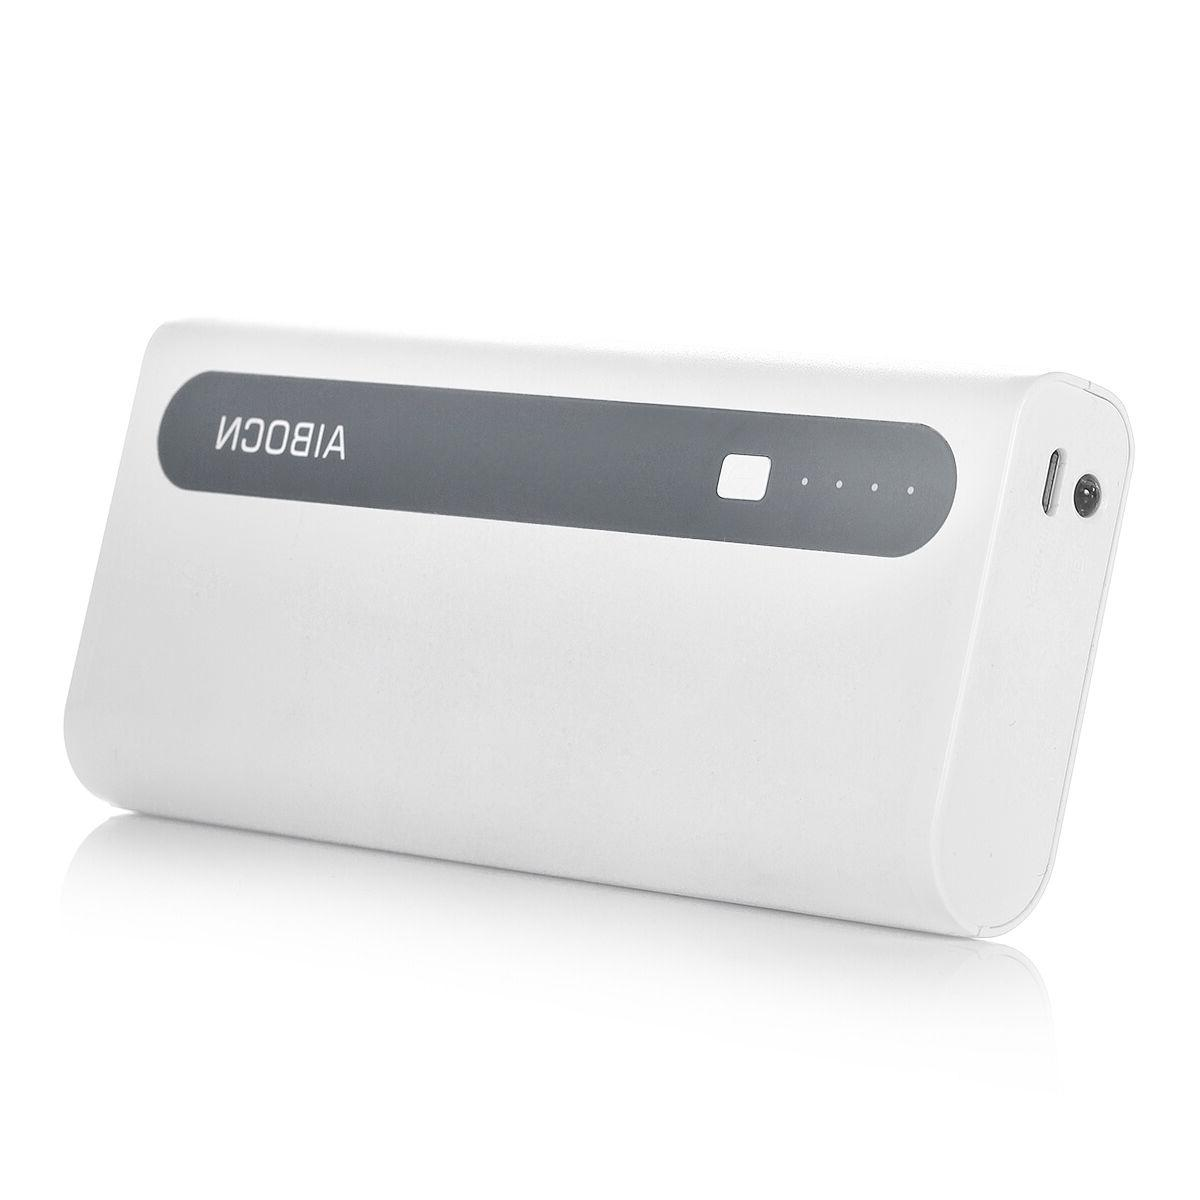 Aibocn 10000mAh Portable Battery Charger iPhone